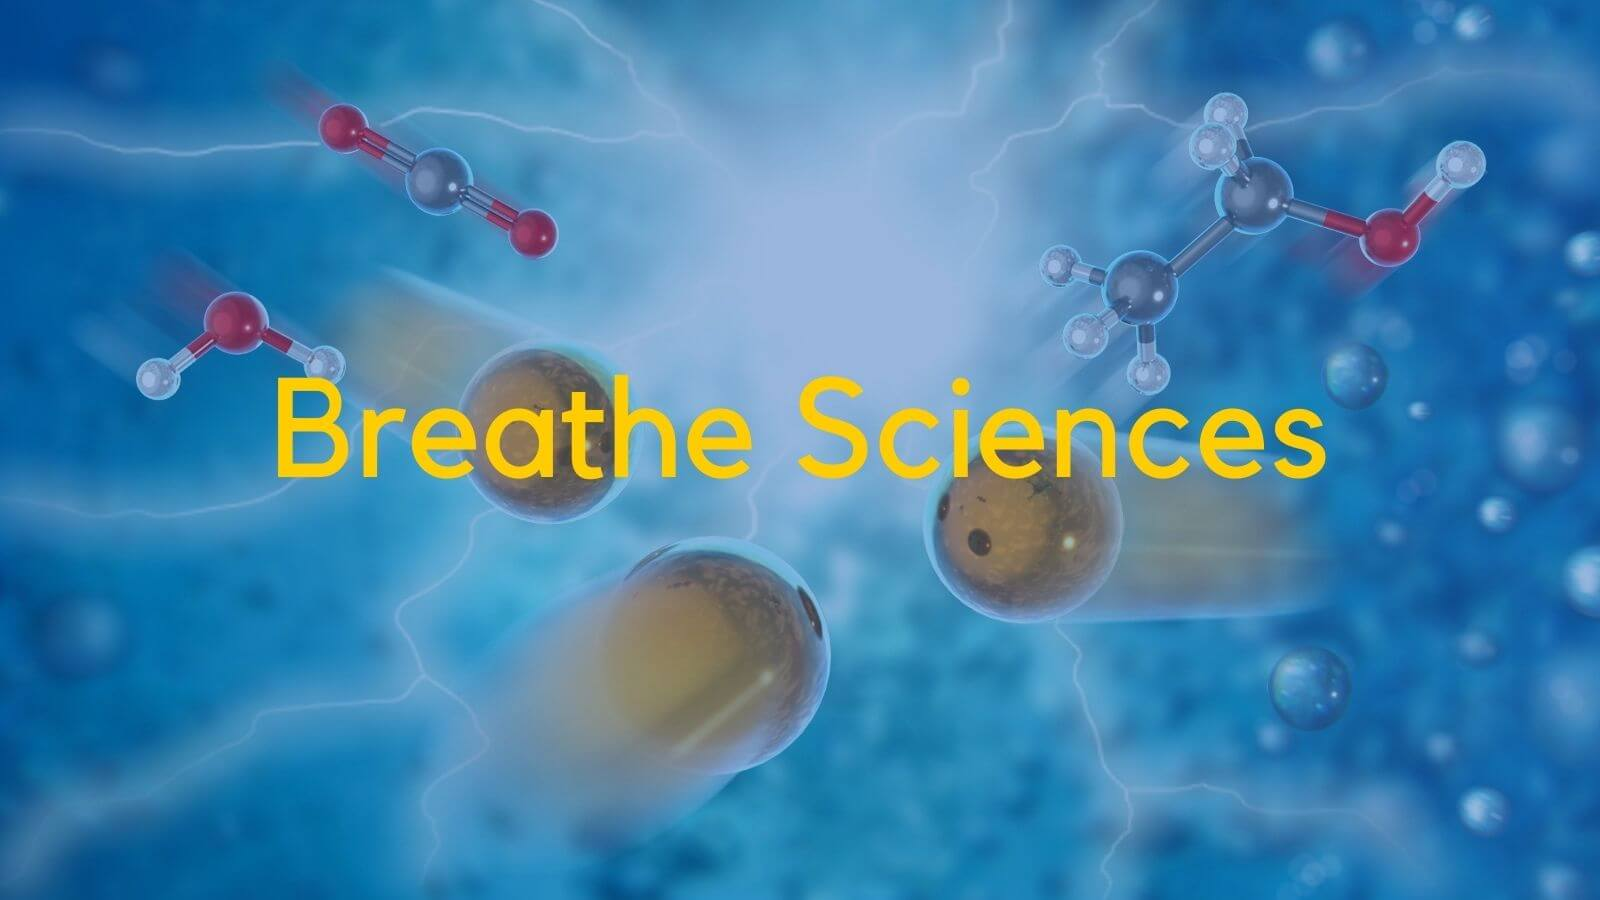 Breathe Sciences receives TDB National Award 2021 for Carbon Recycling